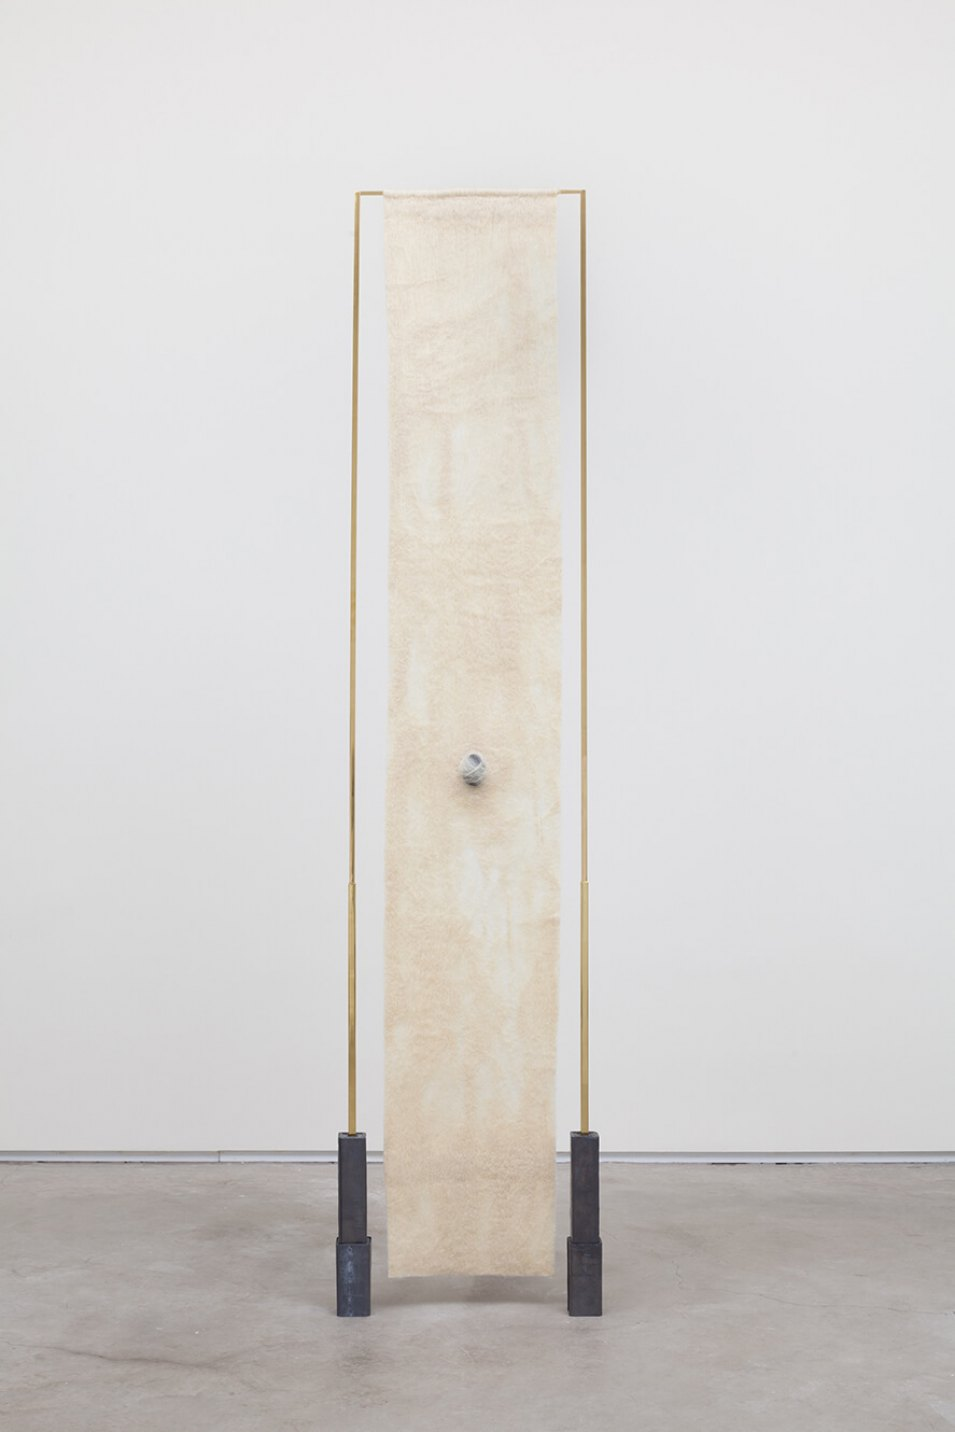 Paloma Bosquê, <em>Gap</em>, 2016, lead sheet, brass rods, wool felted by hand and dyed bee wax shaped in egg form, 189,5 × 38,5 × 5,5 cm - Mendes Wood DM